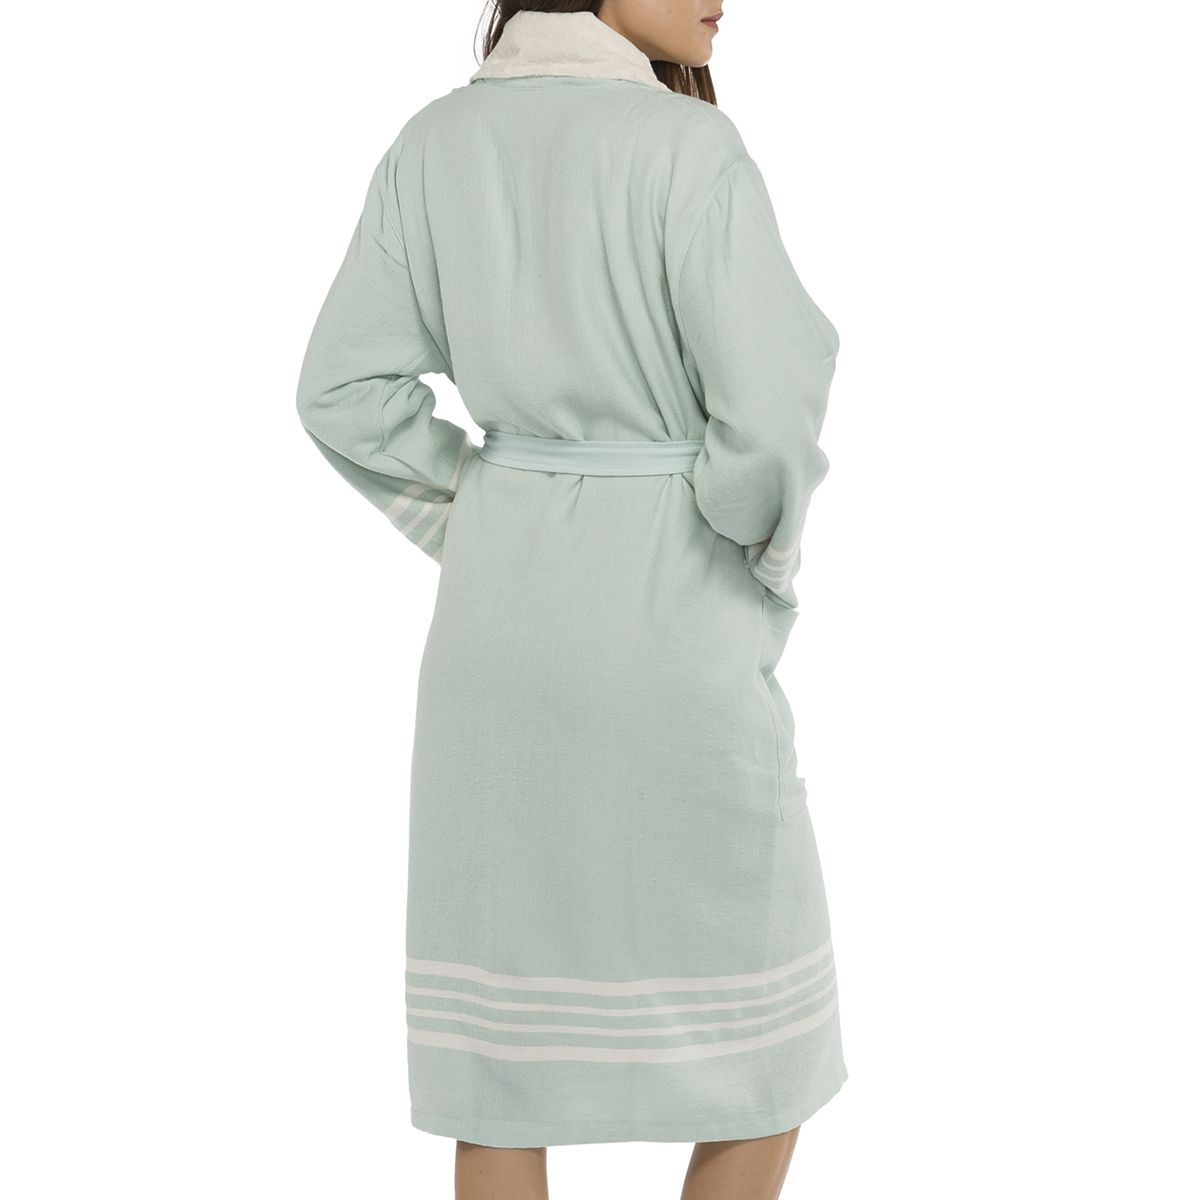 Bathrobe Sultan with towel - Mint